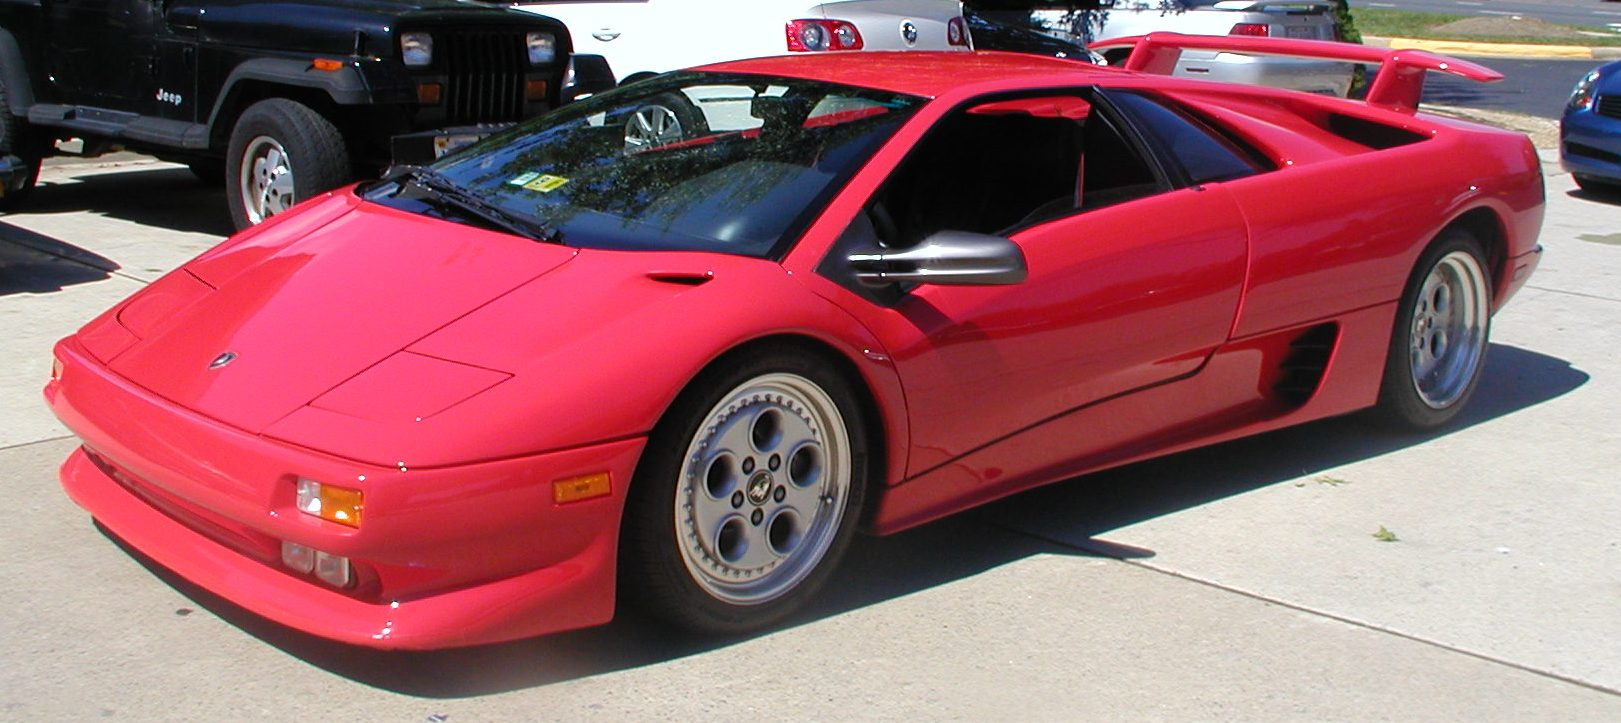 lamborghini diablo 1992 review amazing pictures and images look at the car. Black Bedroom Furniture Sets. Home Design Ideas